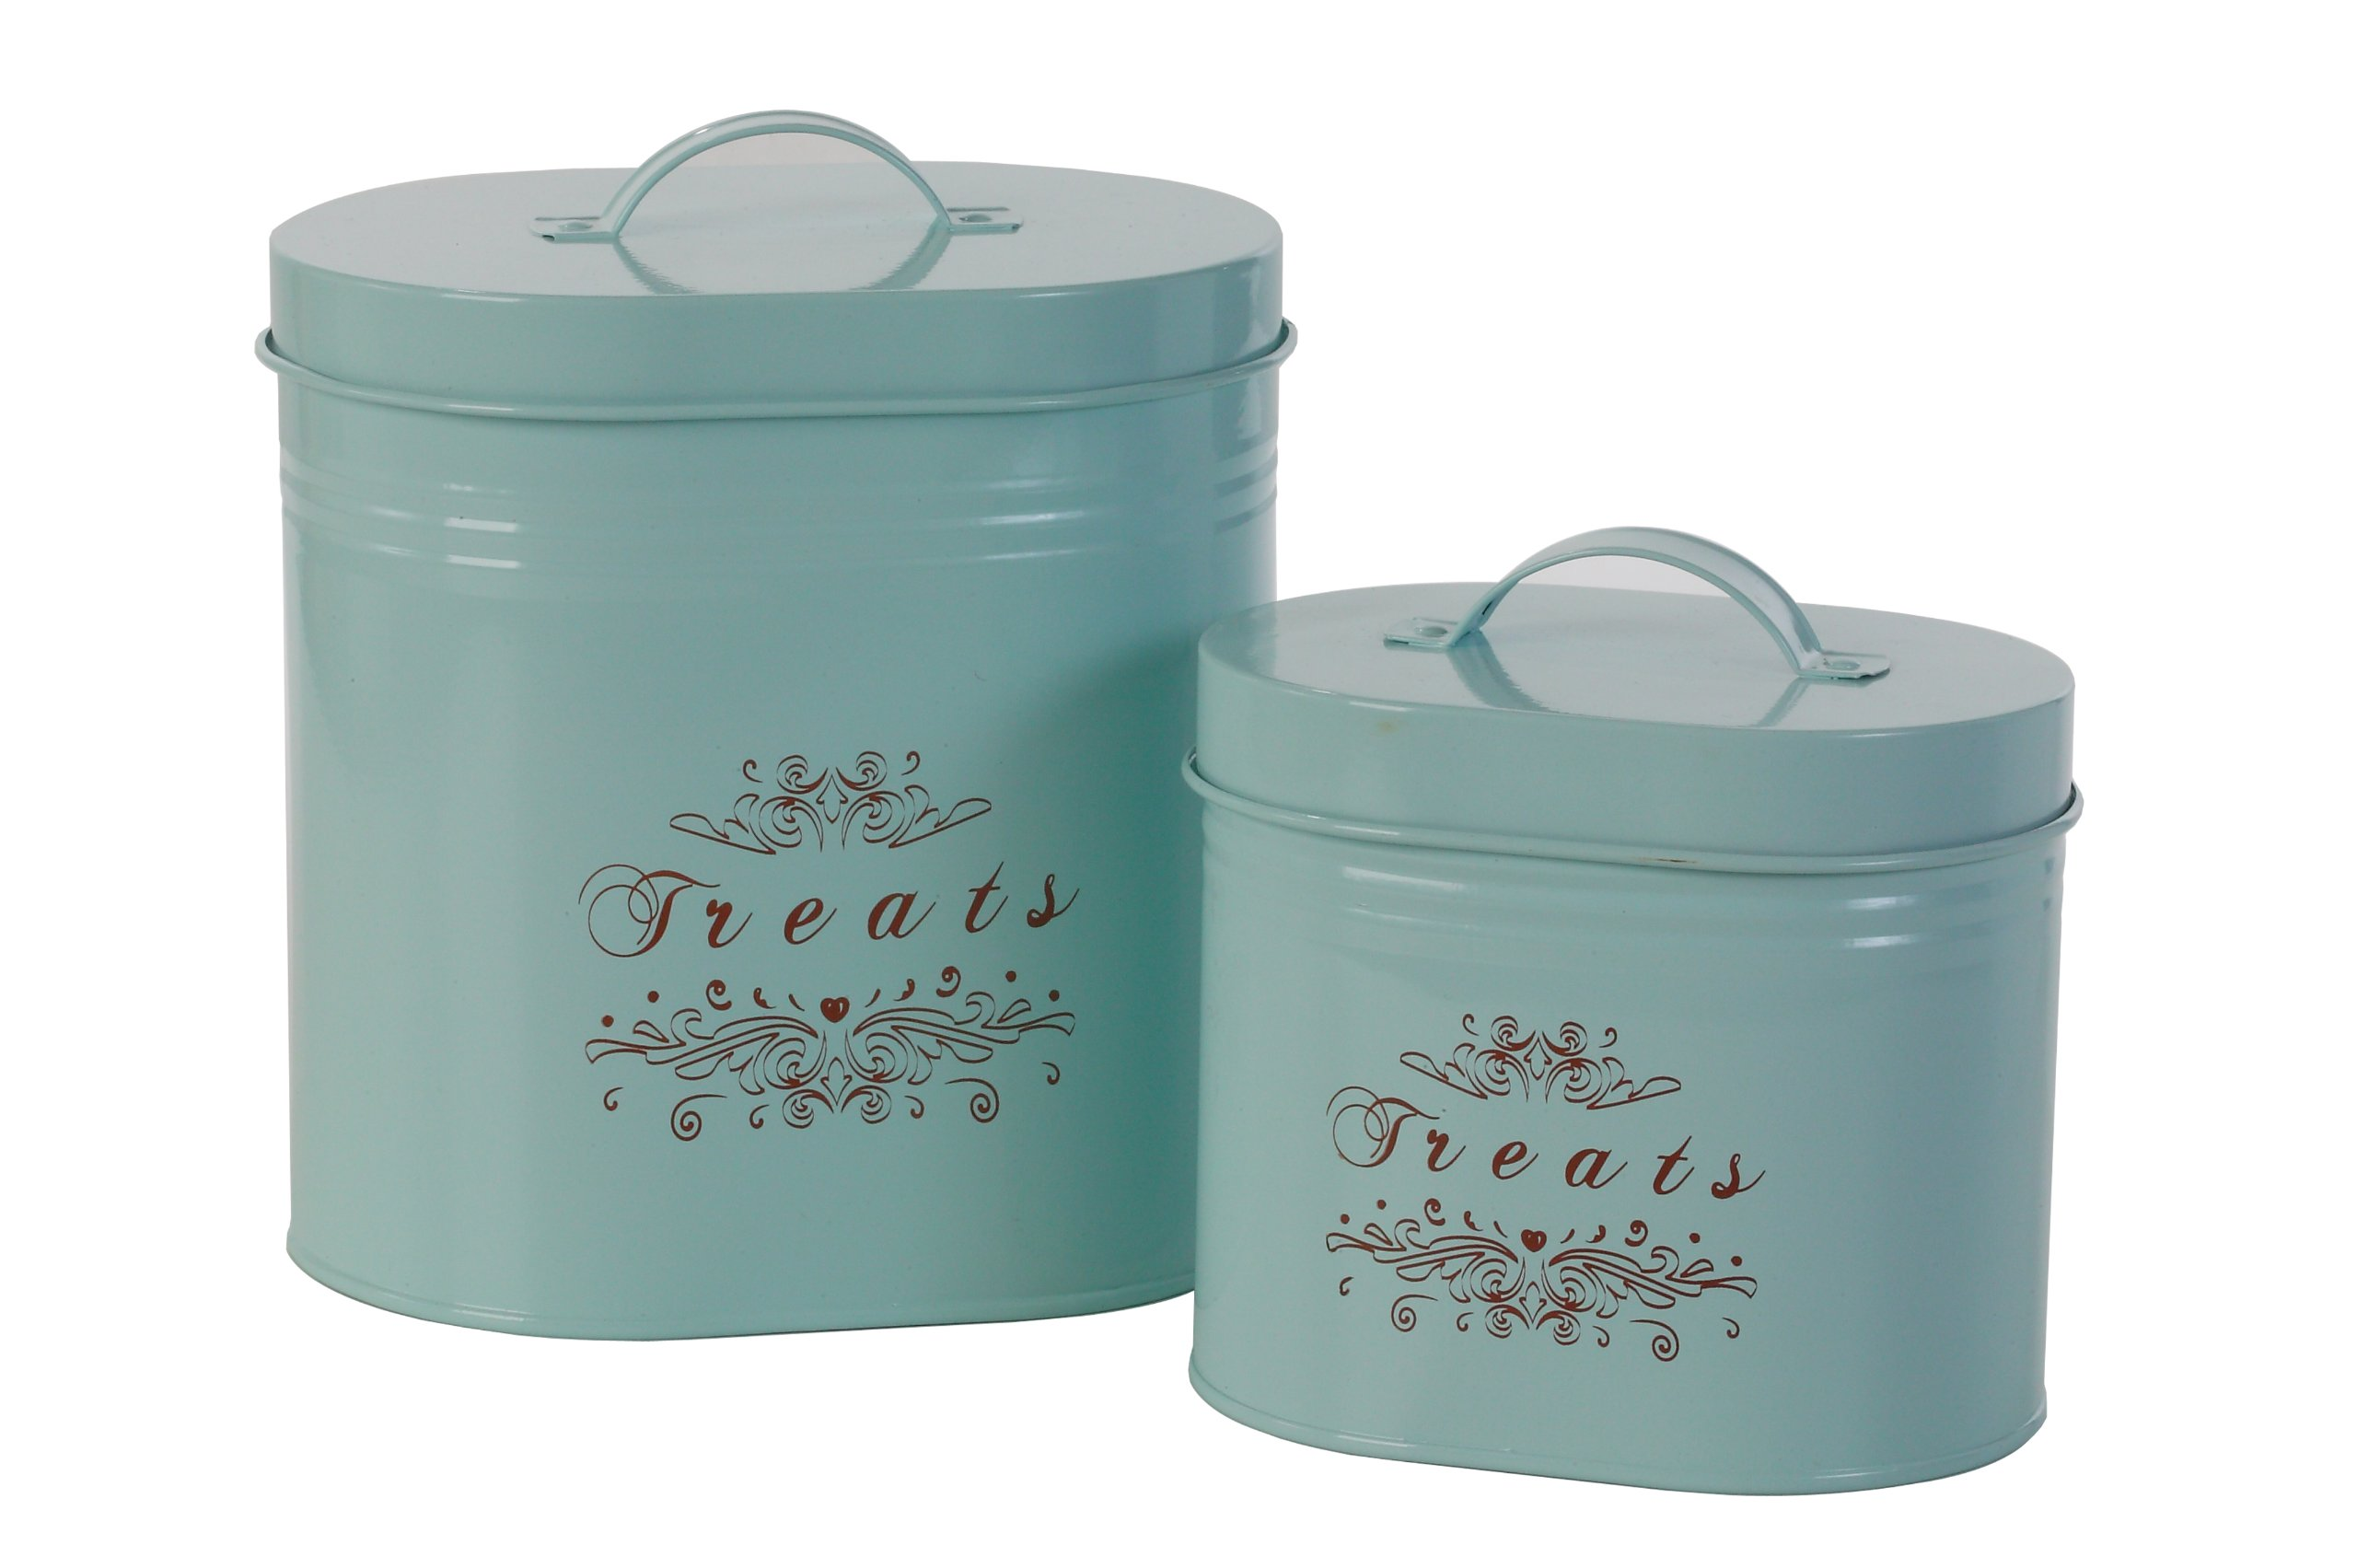 One for Pets Treat Canister Set - Pet Treats Jar Set by One for Pets